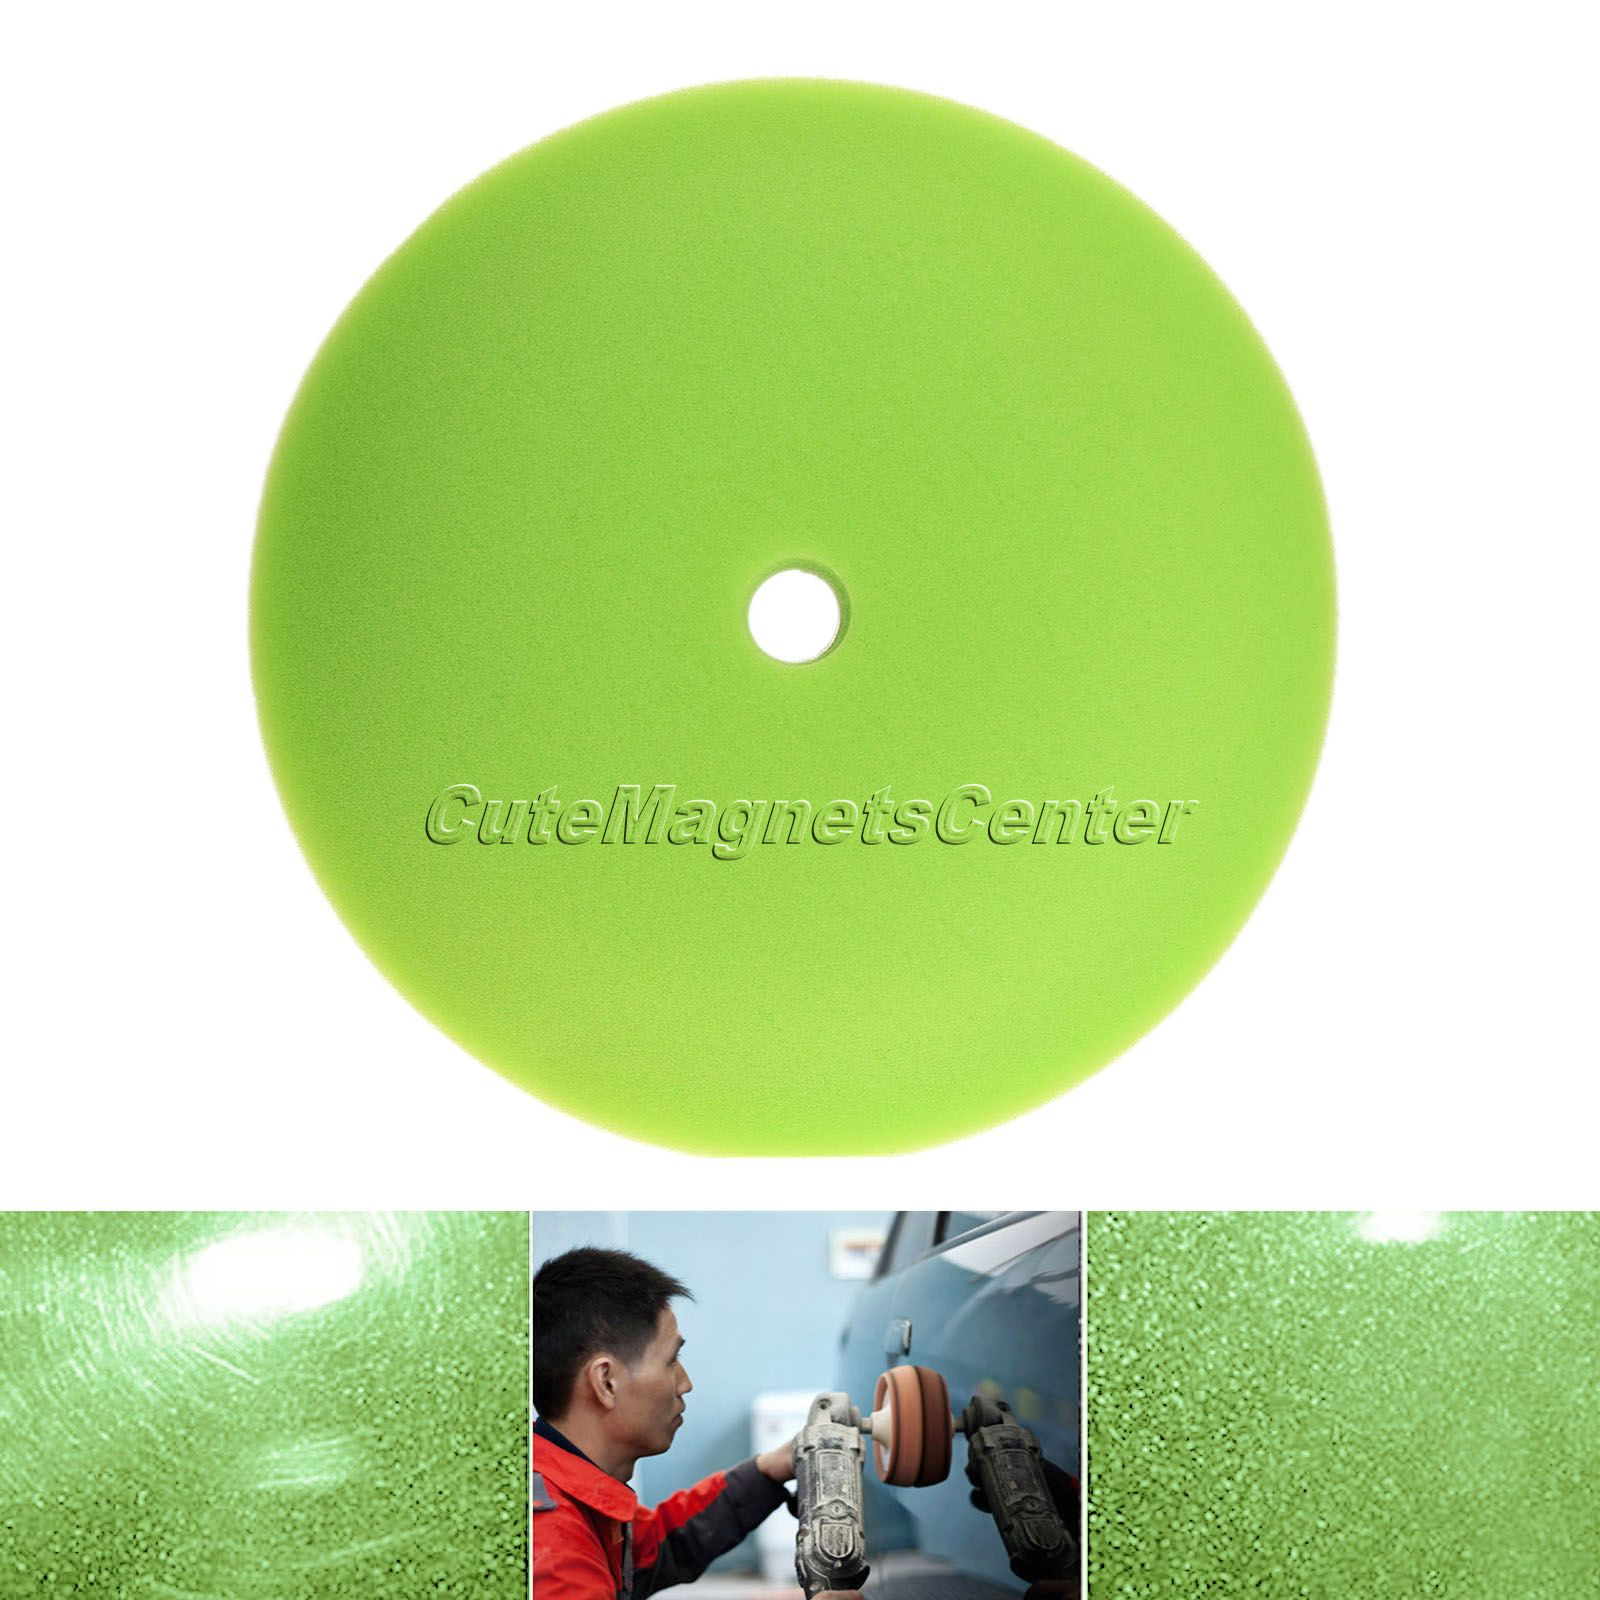 1Pc Car Wash 6 inch Soft Foam Felt Cleaning Sponge Car-styling Waxing Polishing Buffing Pads Car Detailing Auto Tool Accessories